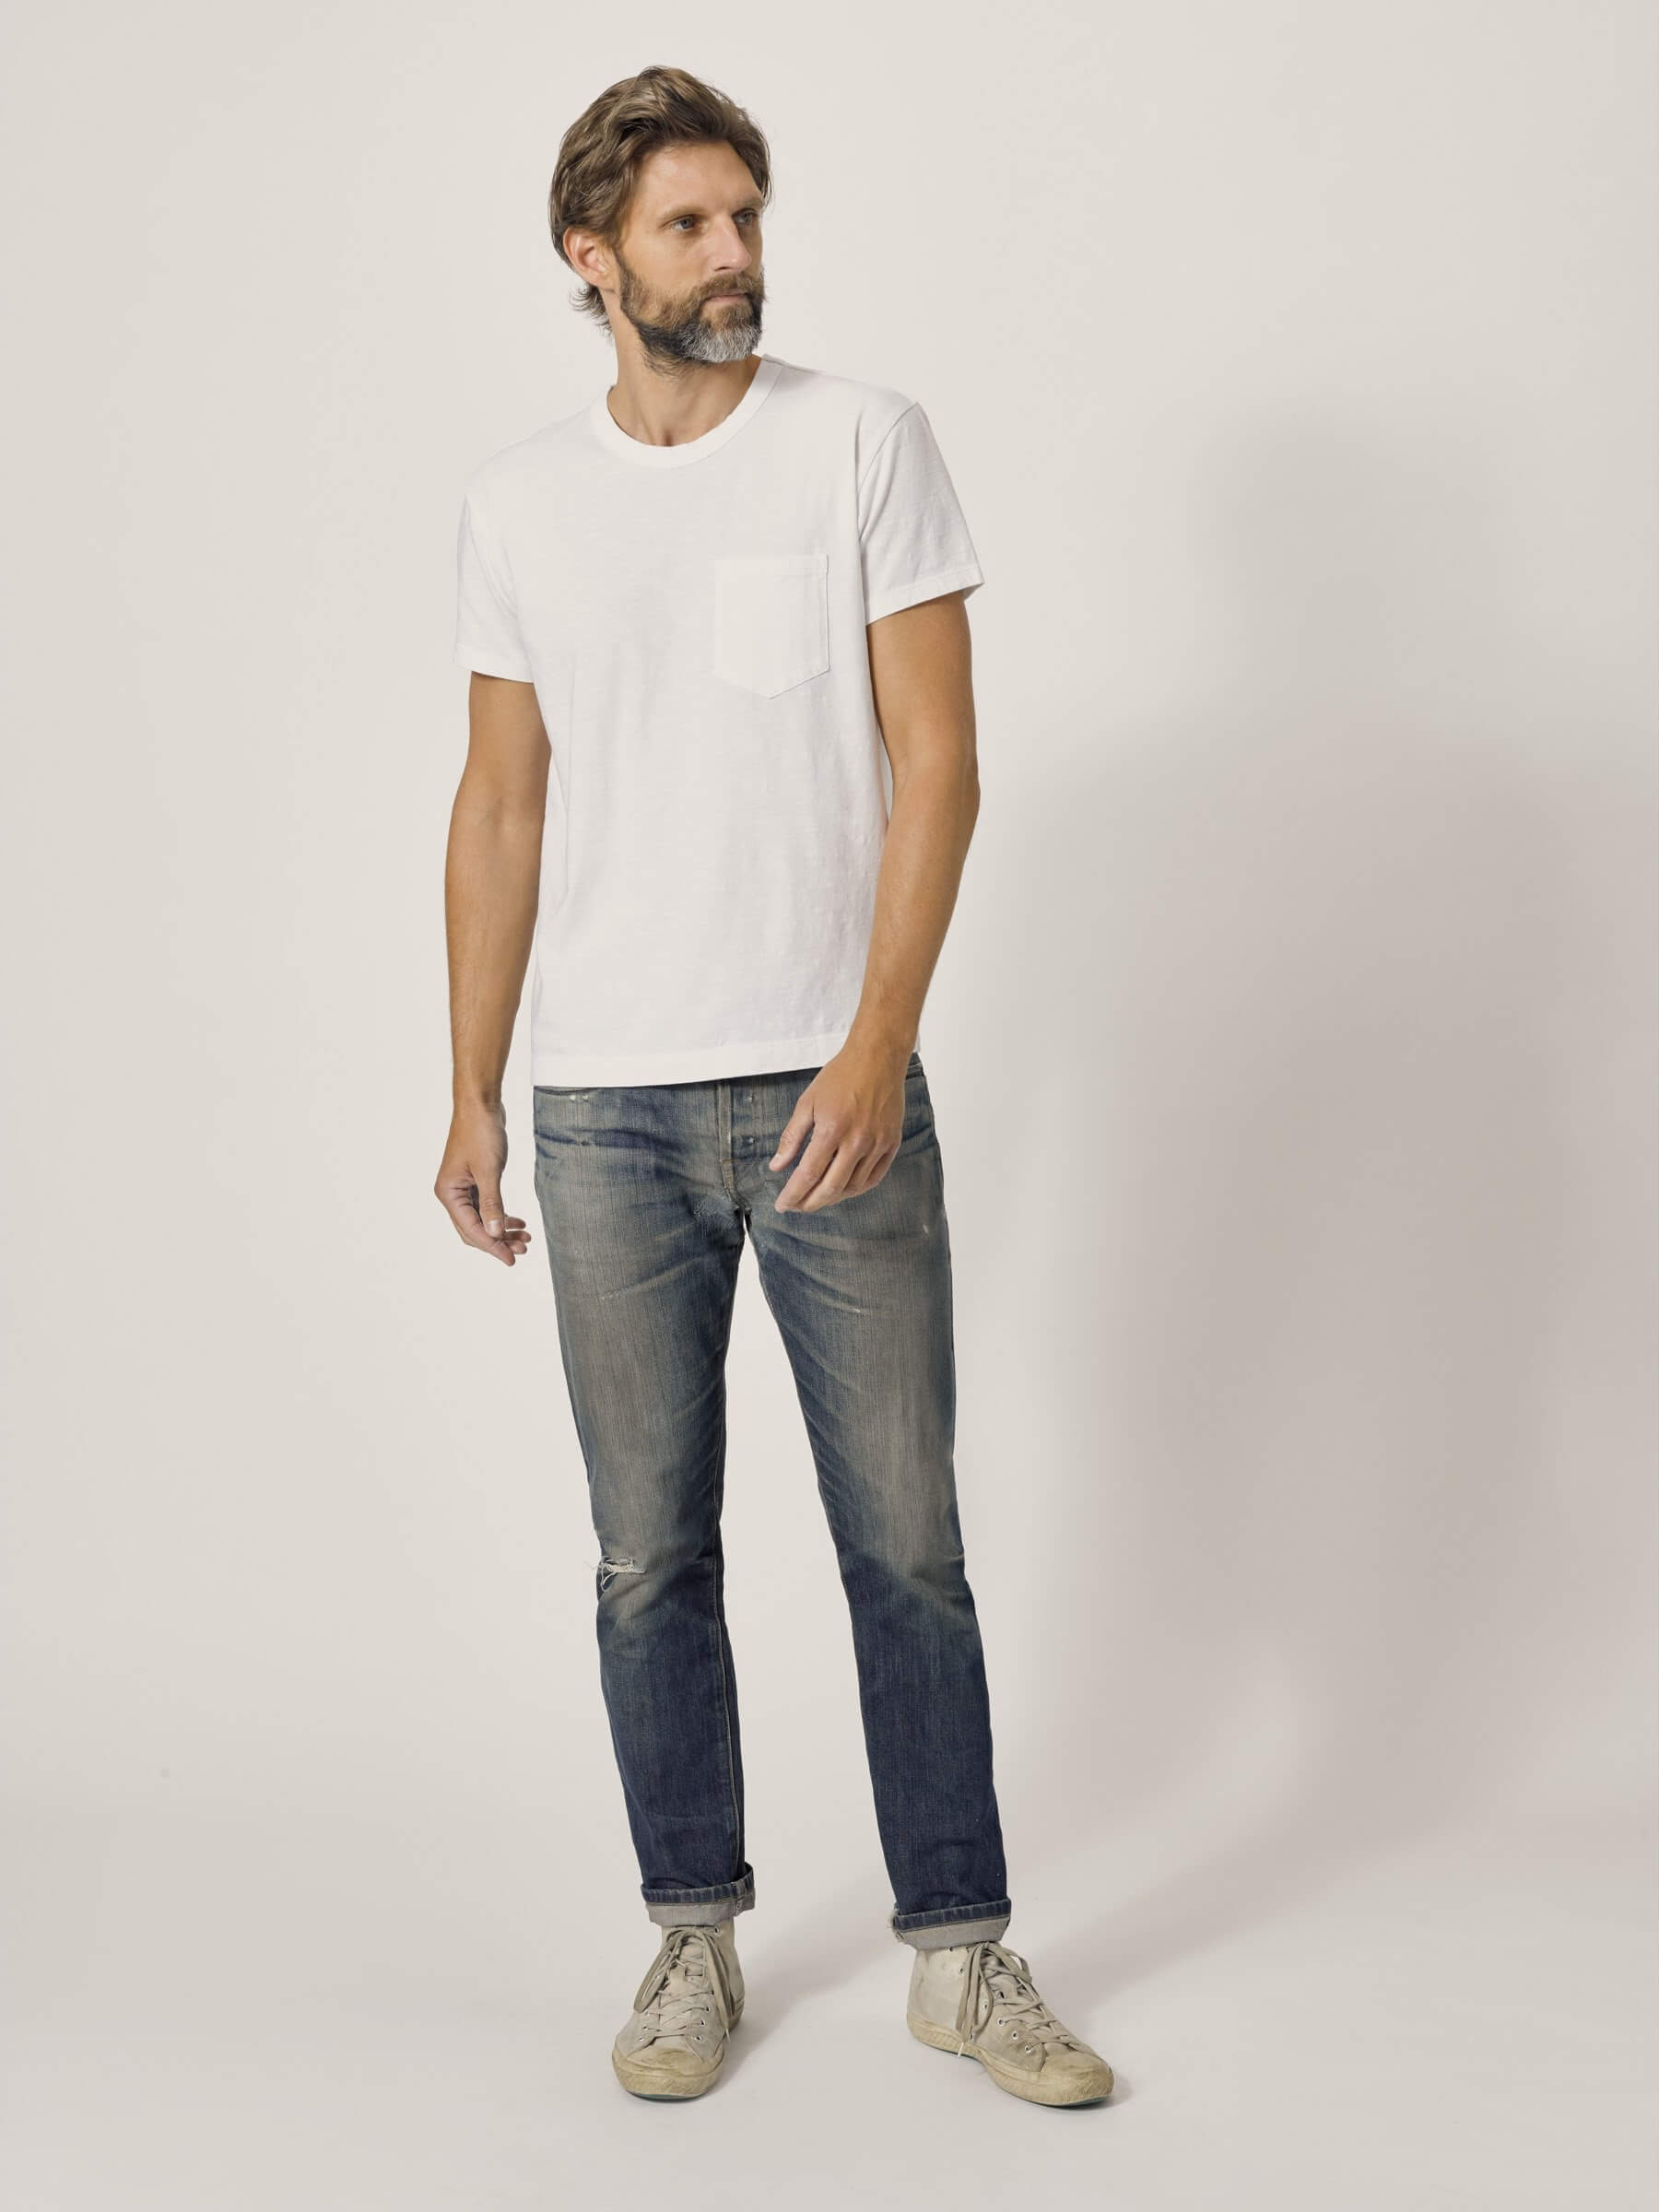 Men's classic jeans and white T-shirt